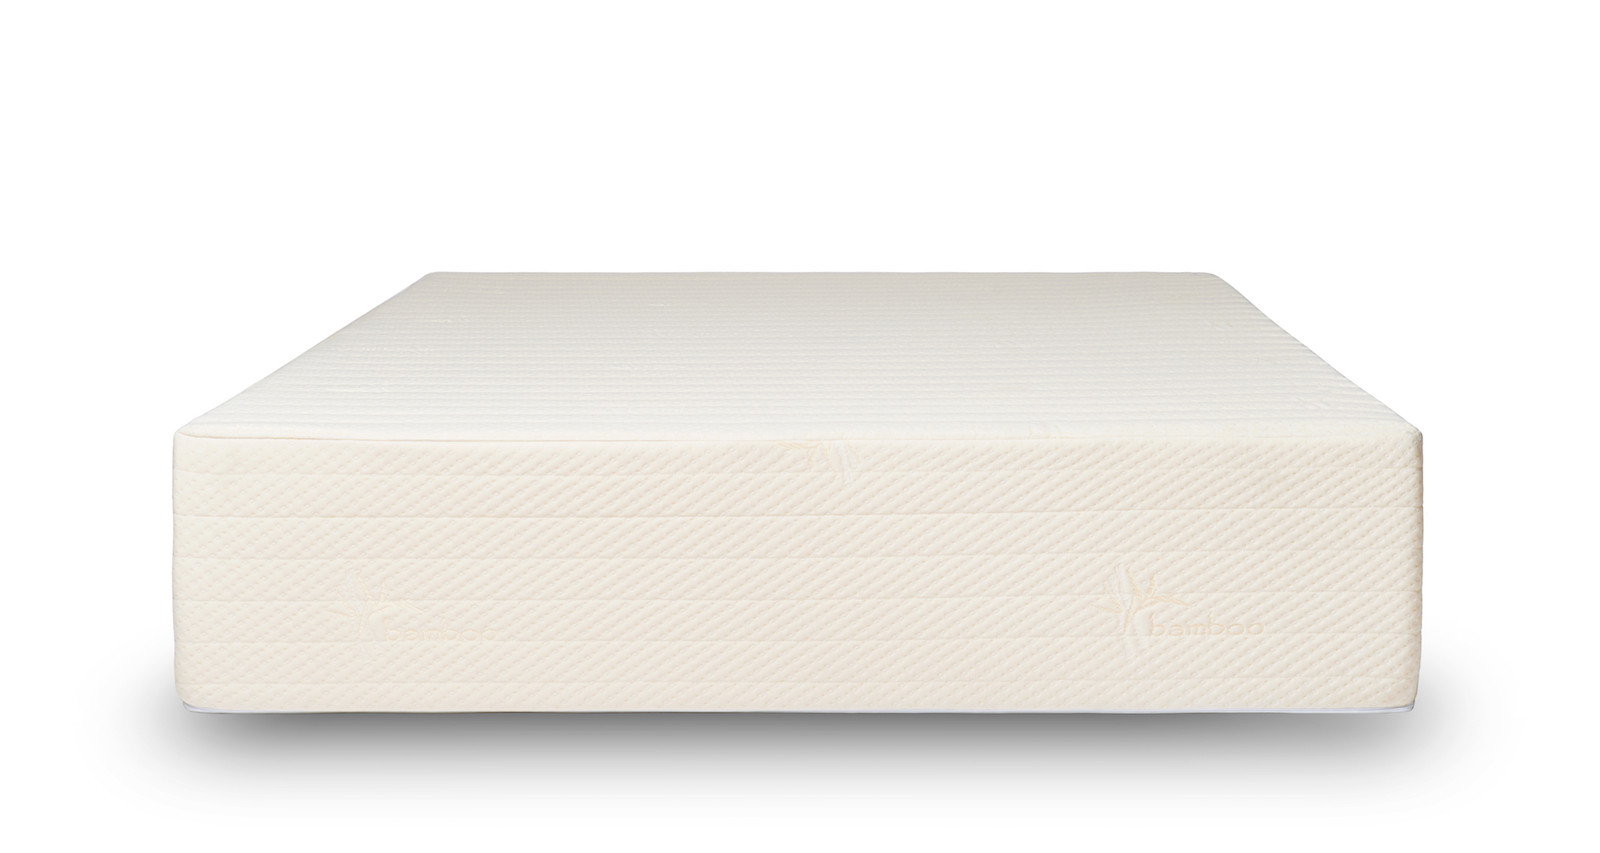 Brentwood Home Bamboo Gel 13 Memory Foam Mattress, girl on the mattress, brentwood home mattress reviews